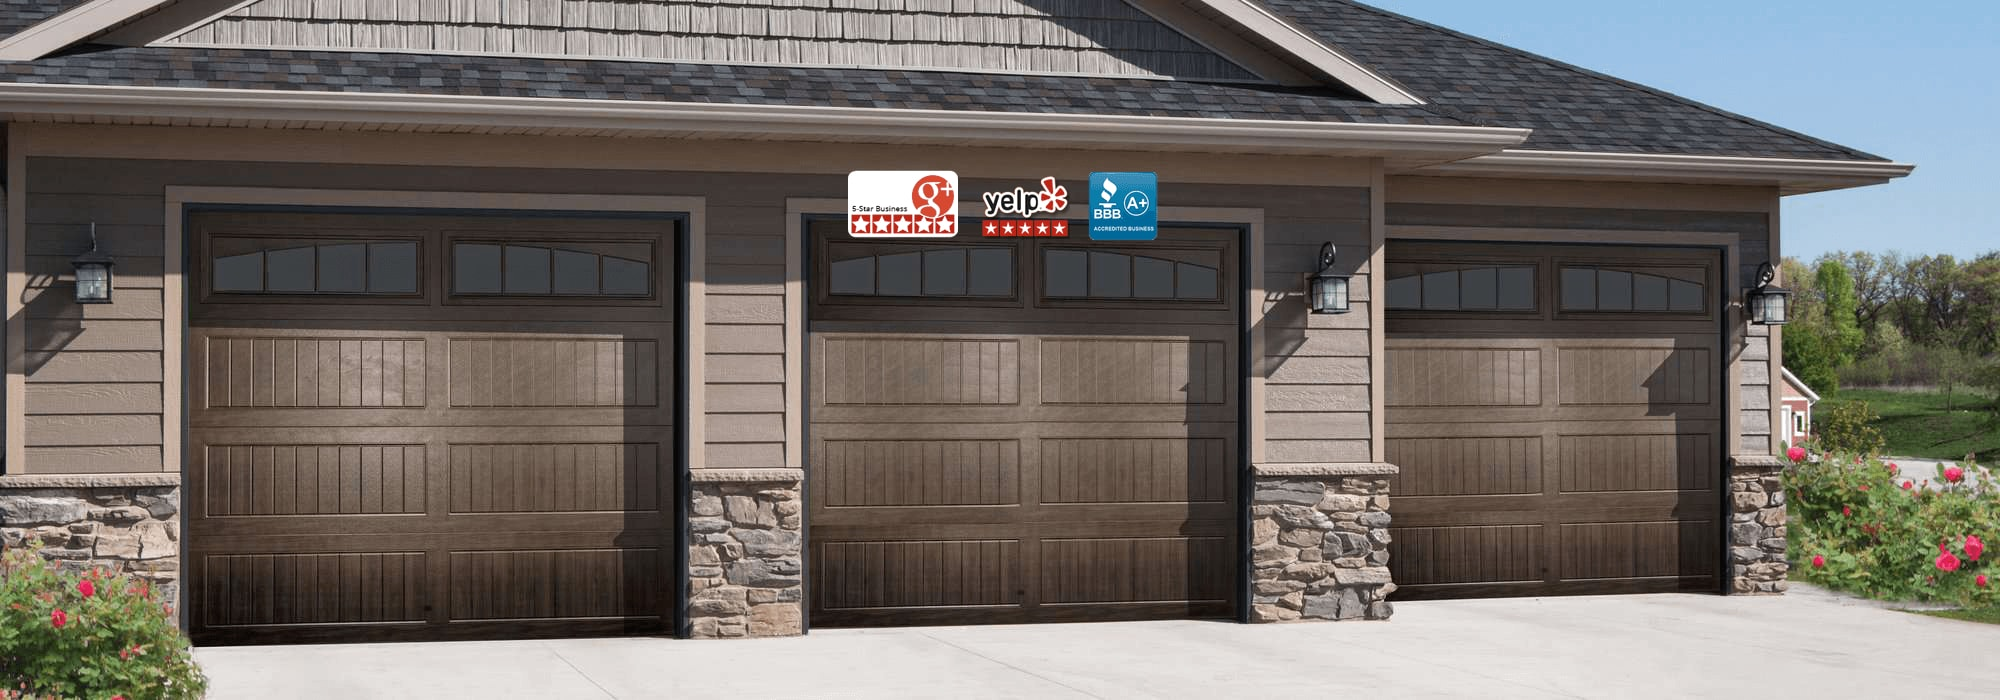 Garage door repair tacoma wa same day repair service call 247 rubansaba